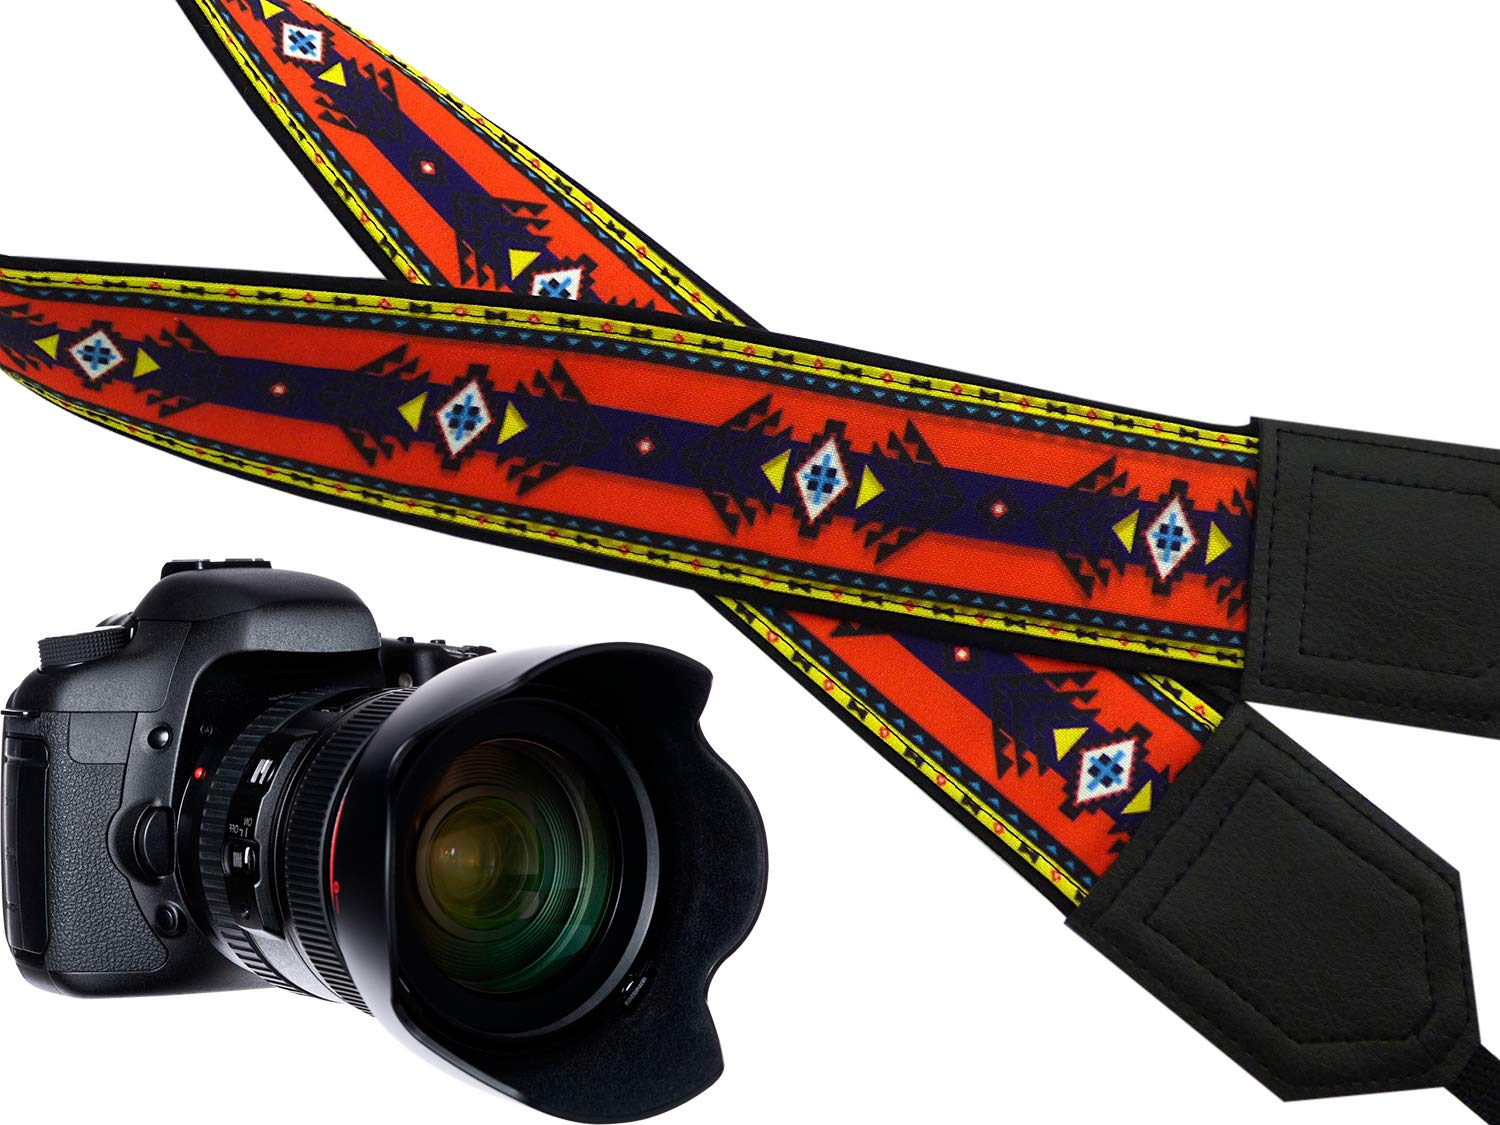 Ethnic Camera Strap Golden Aztec Camera Strap Code 00186 Colorful DSLR//SLR Camera Strap Light Weight and Well Padded Camera Strap Durable